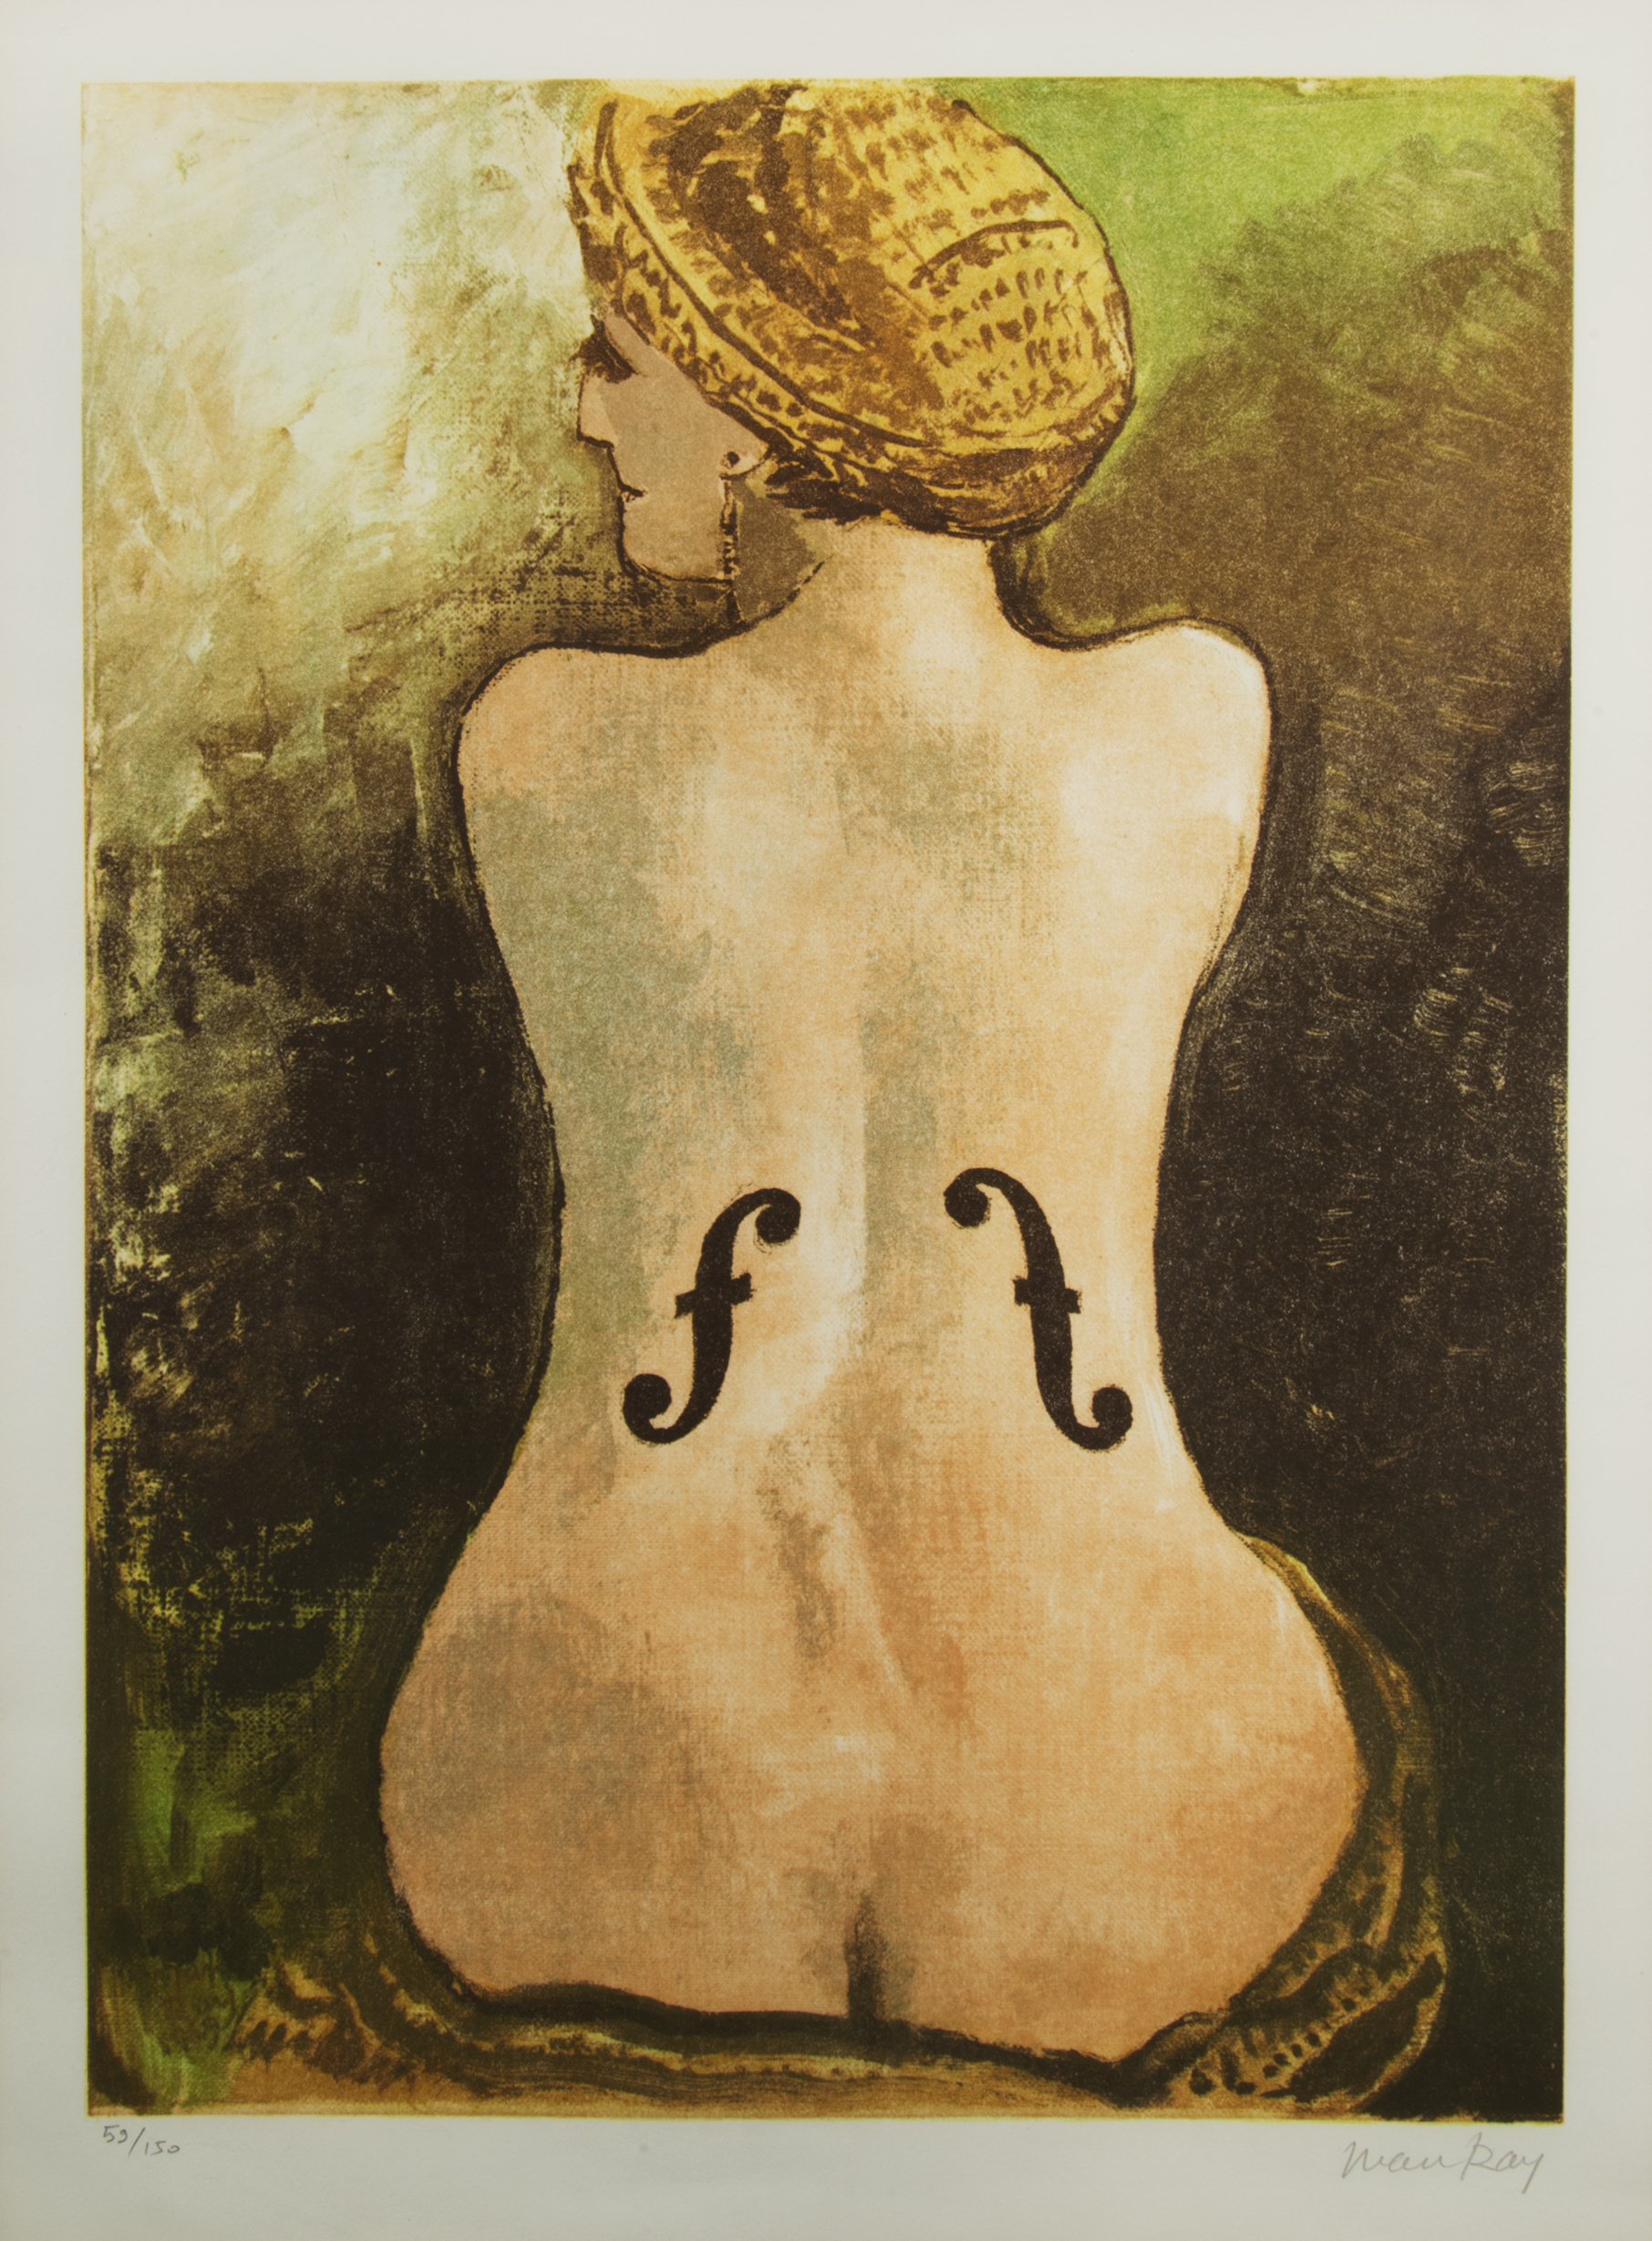 Le Violon d'Ingres by Man Ray, 1924